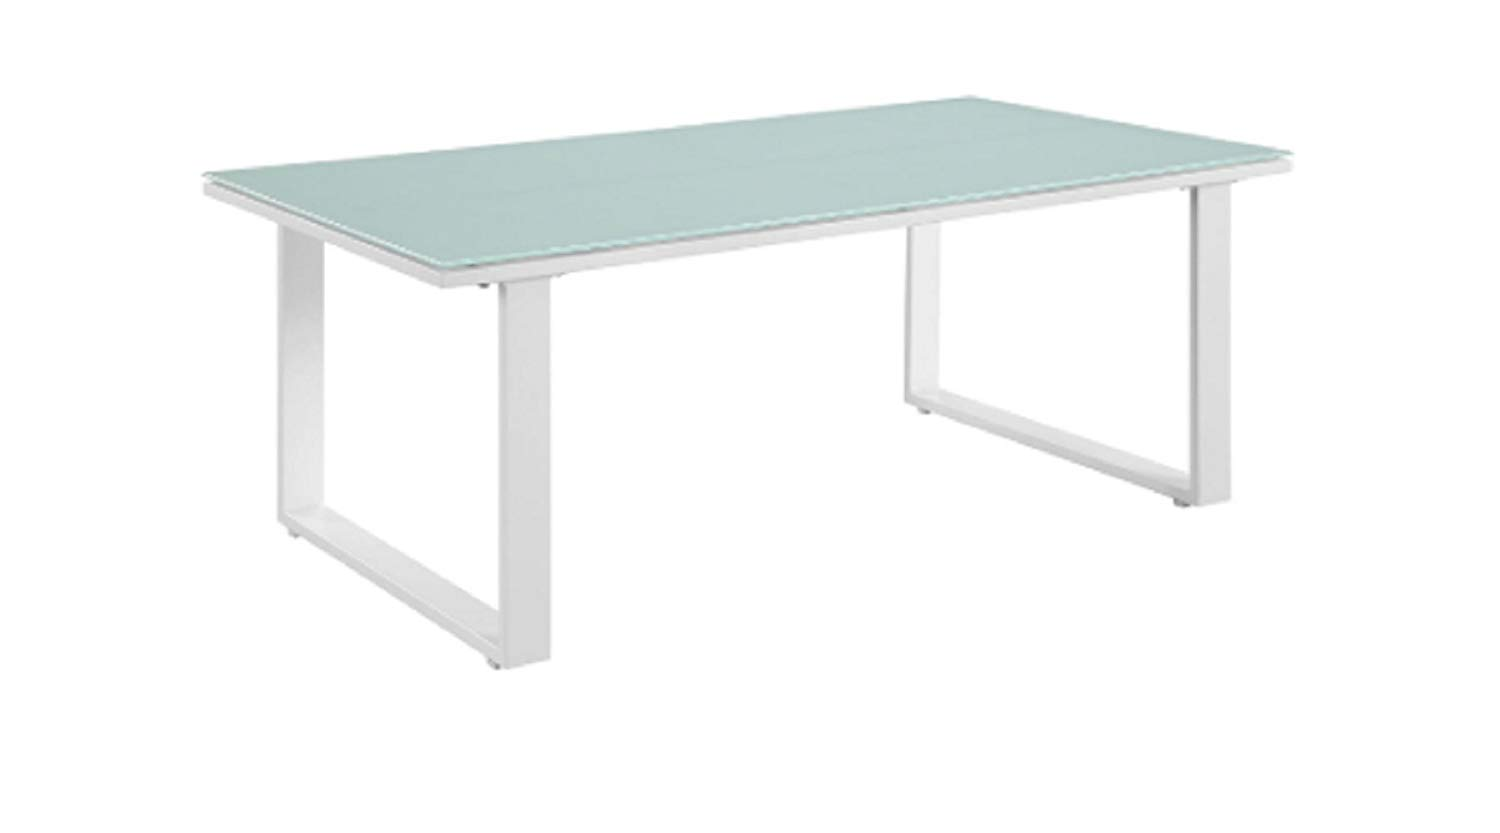 MyEasyShopping Outdoor Patio Coffee Table, White, 7 x 26 x 46 inches